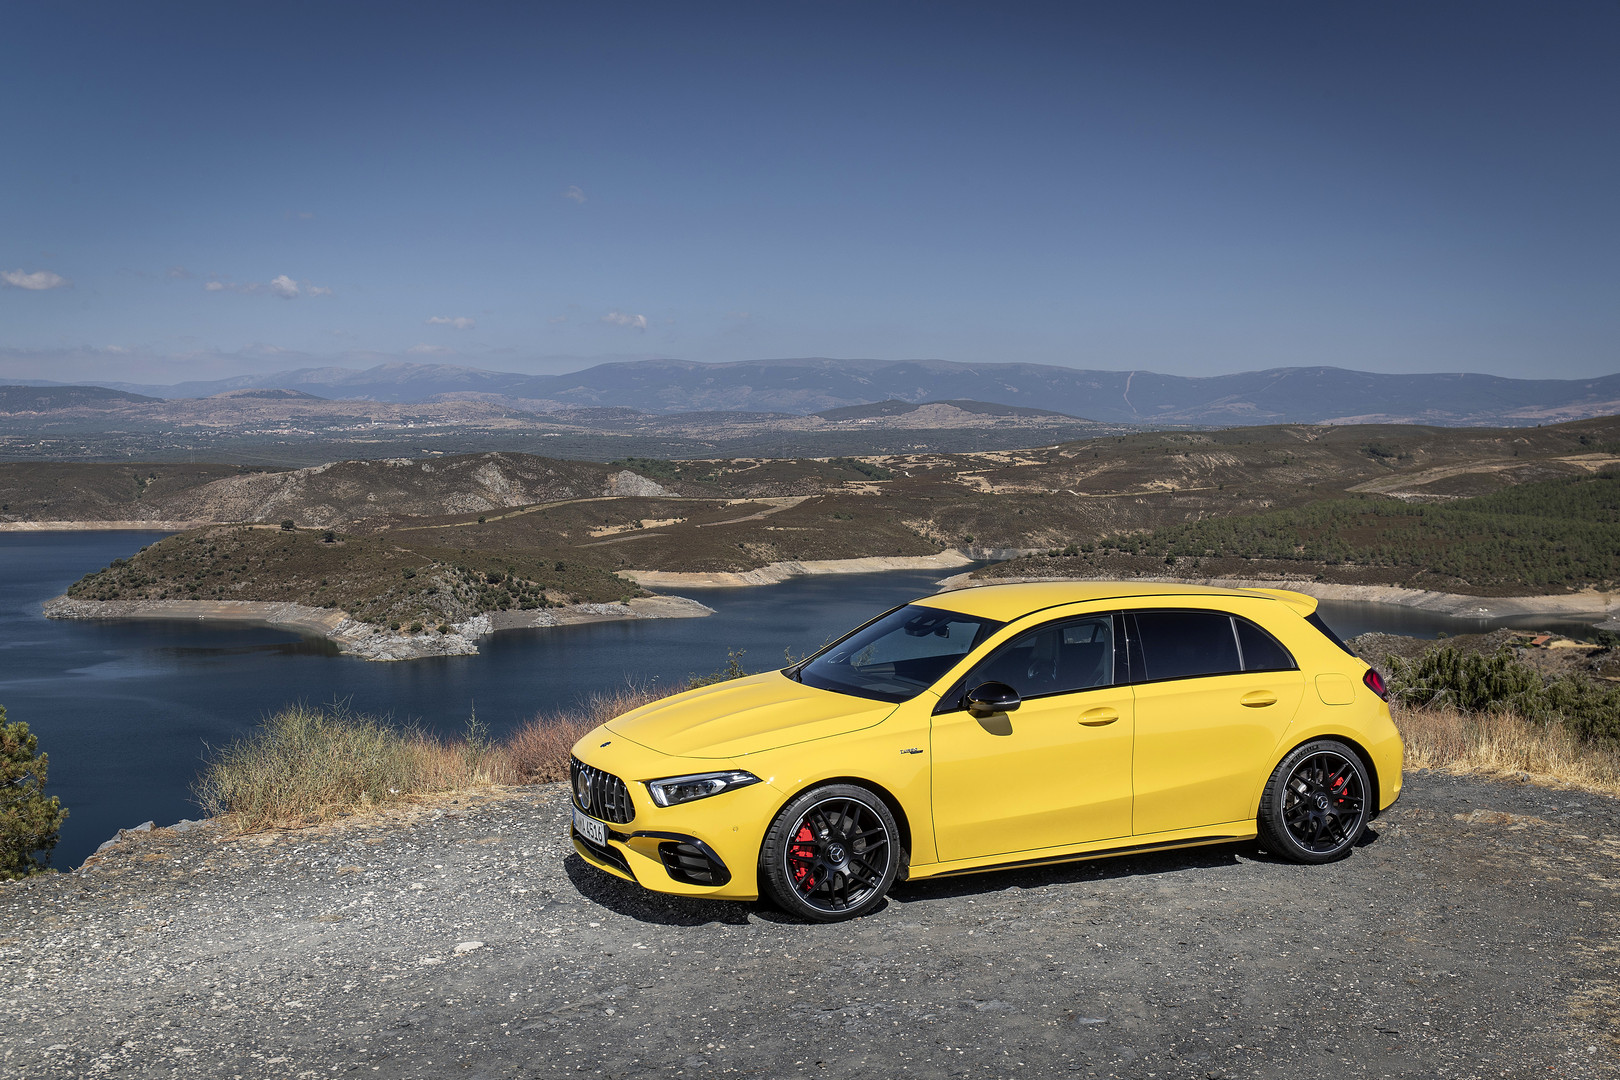 2020 A45 S AMG - Yellow